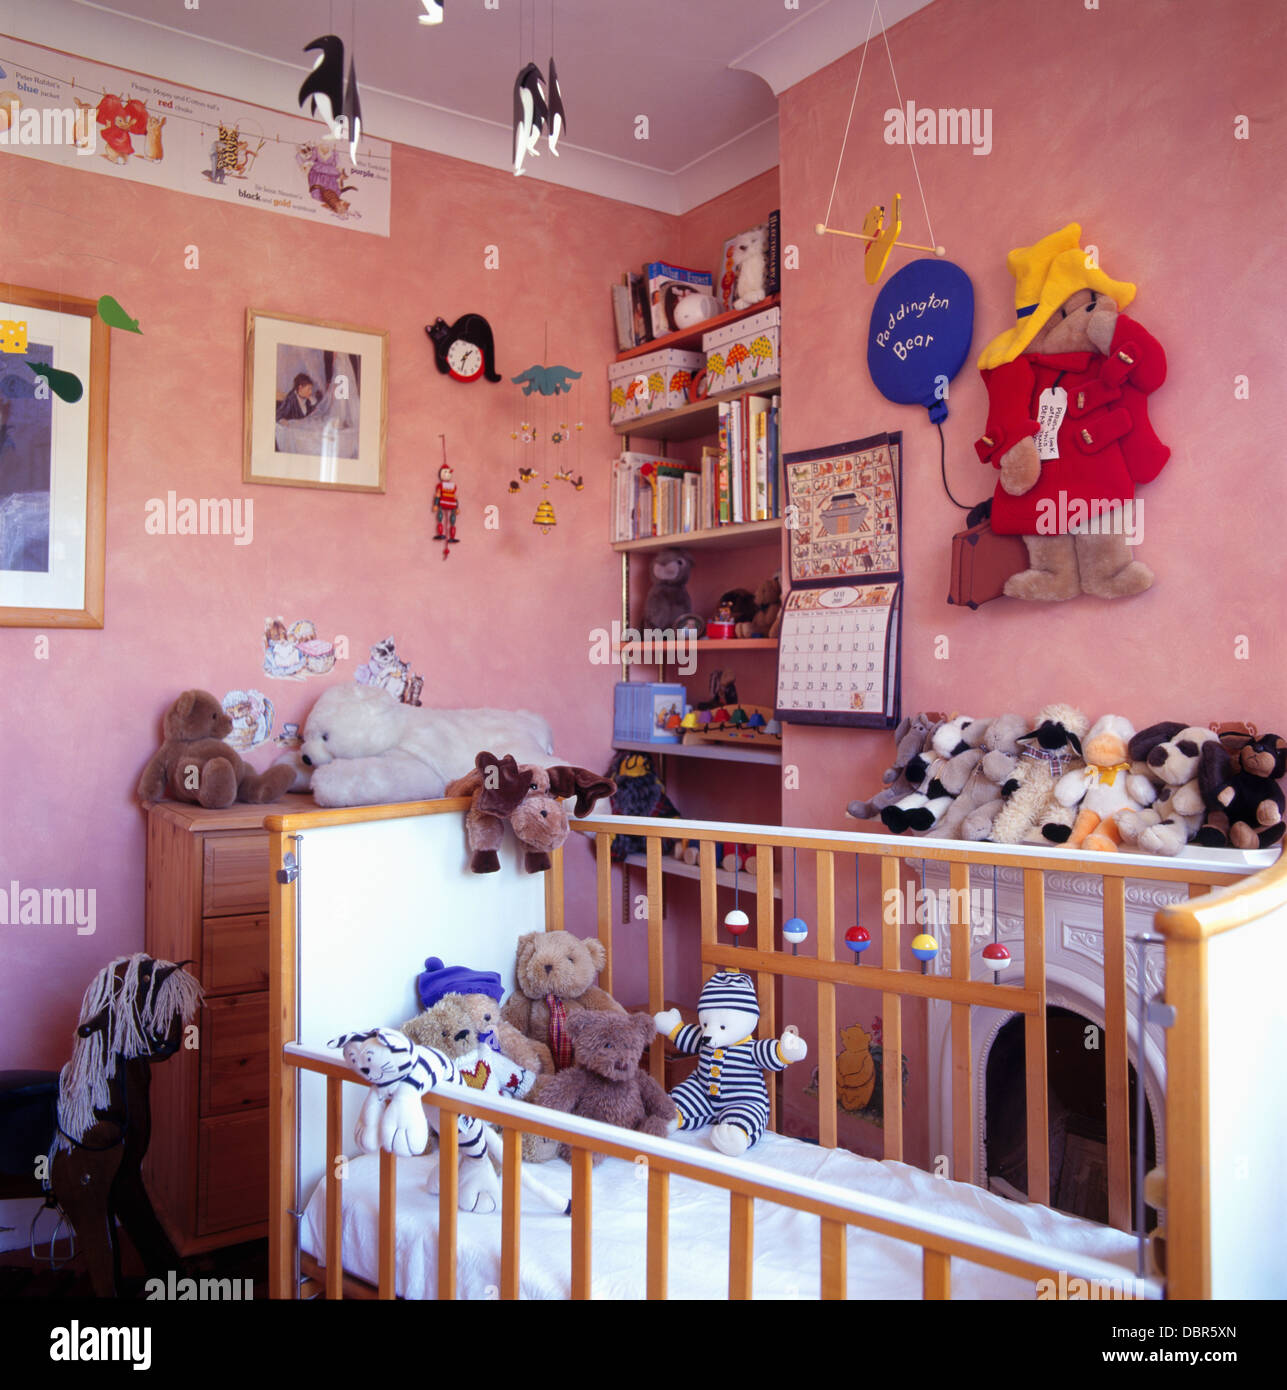 soft toys in baby s cot in pink nursery bedroom with large felt